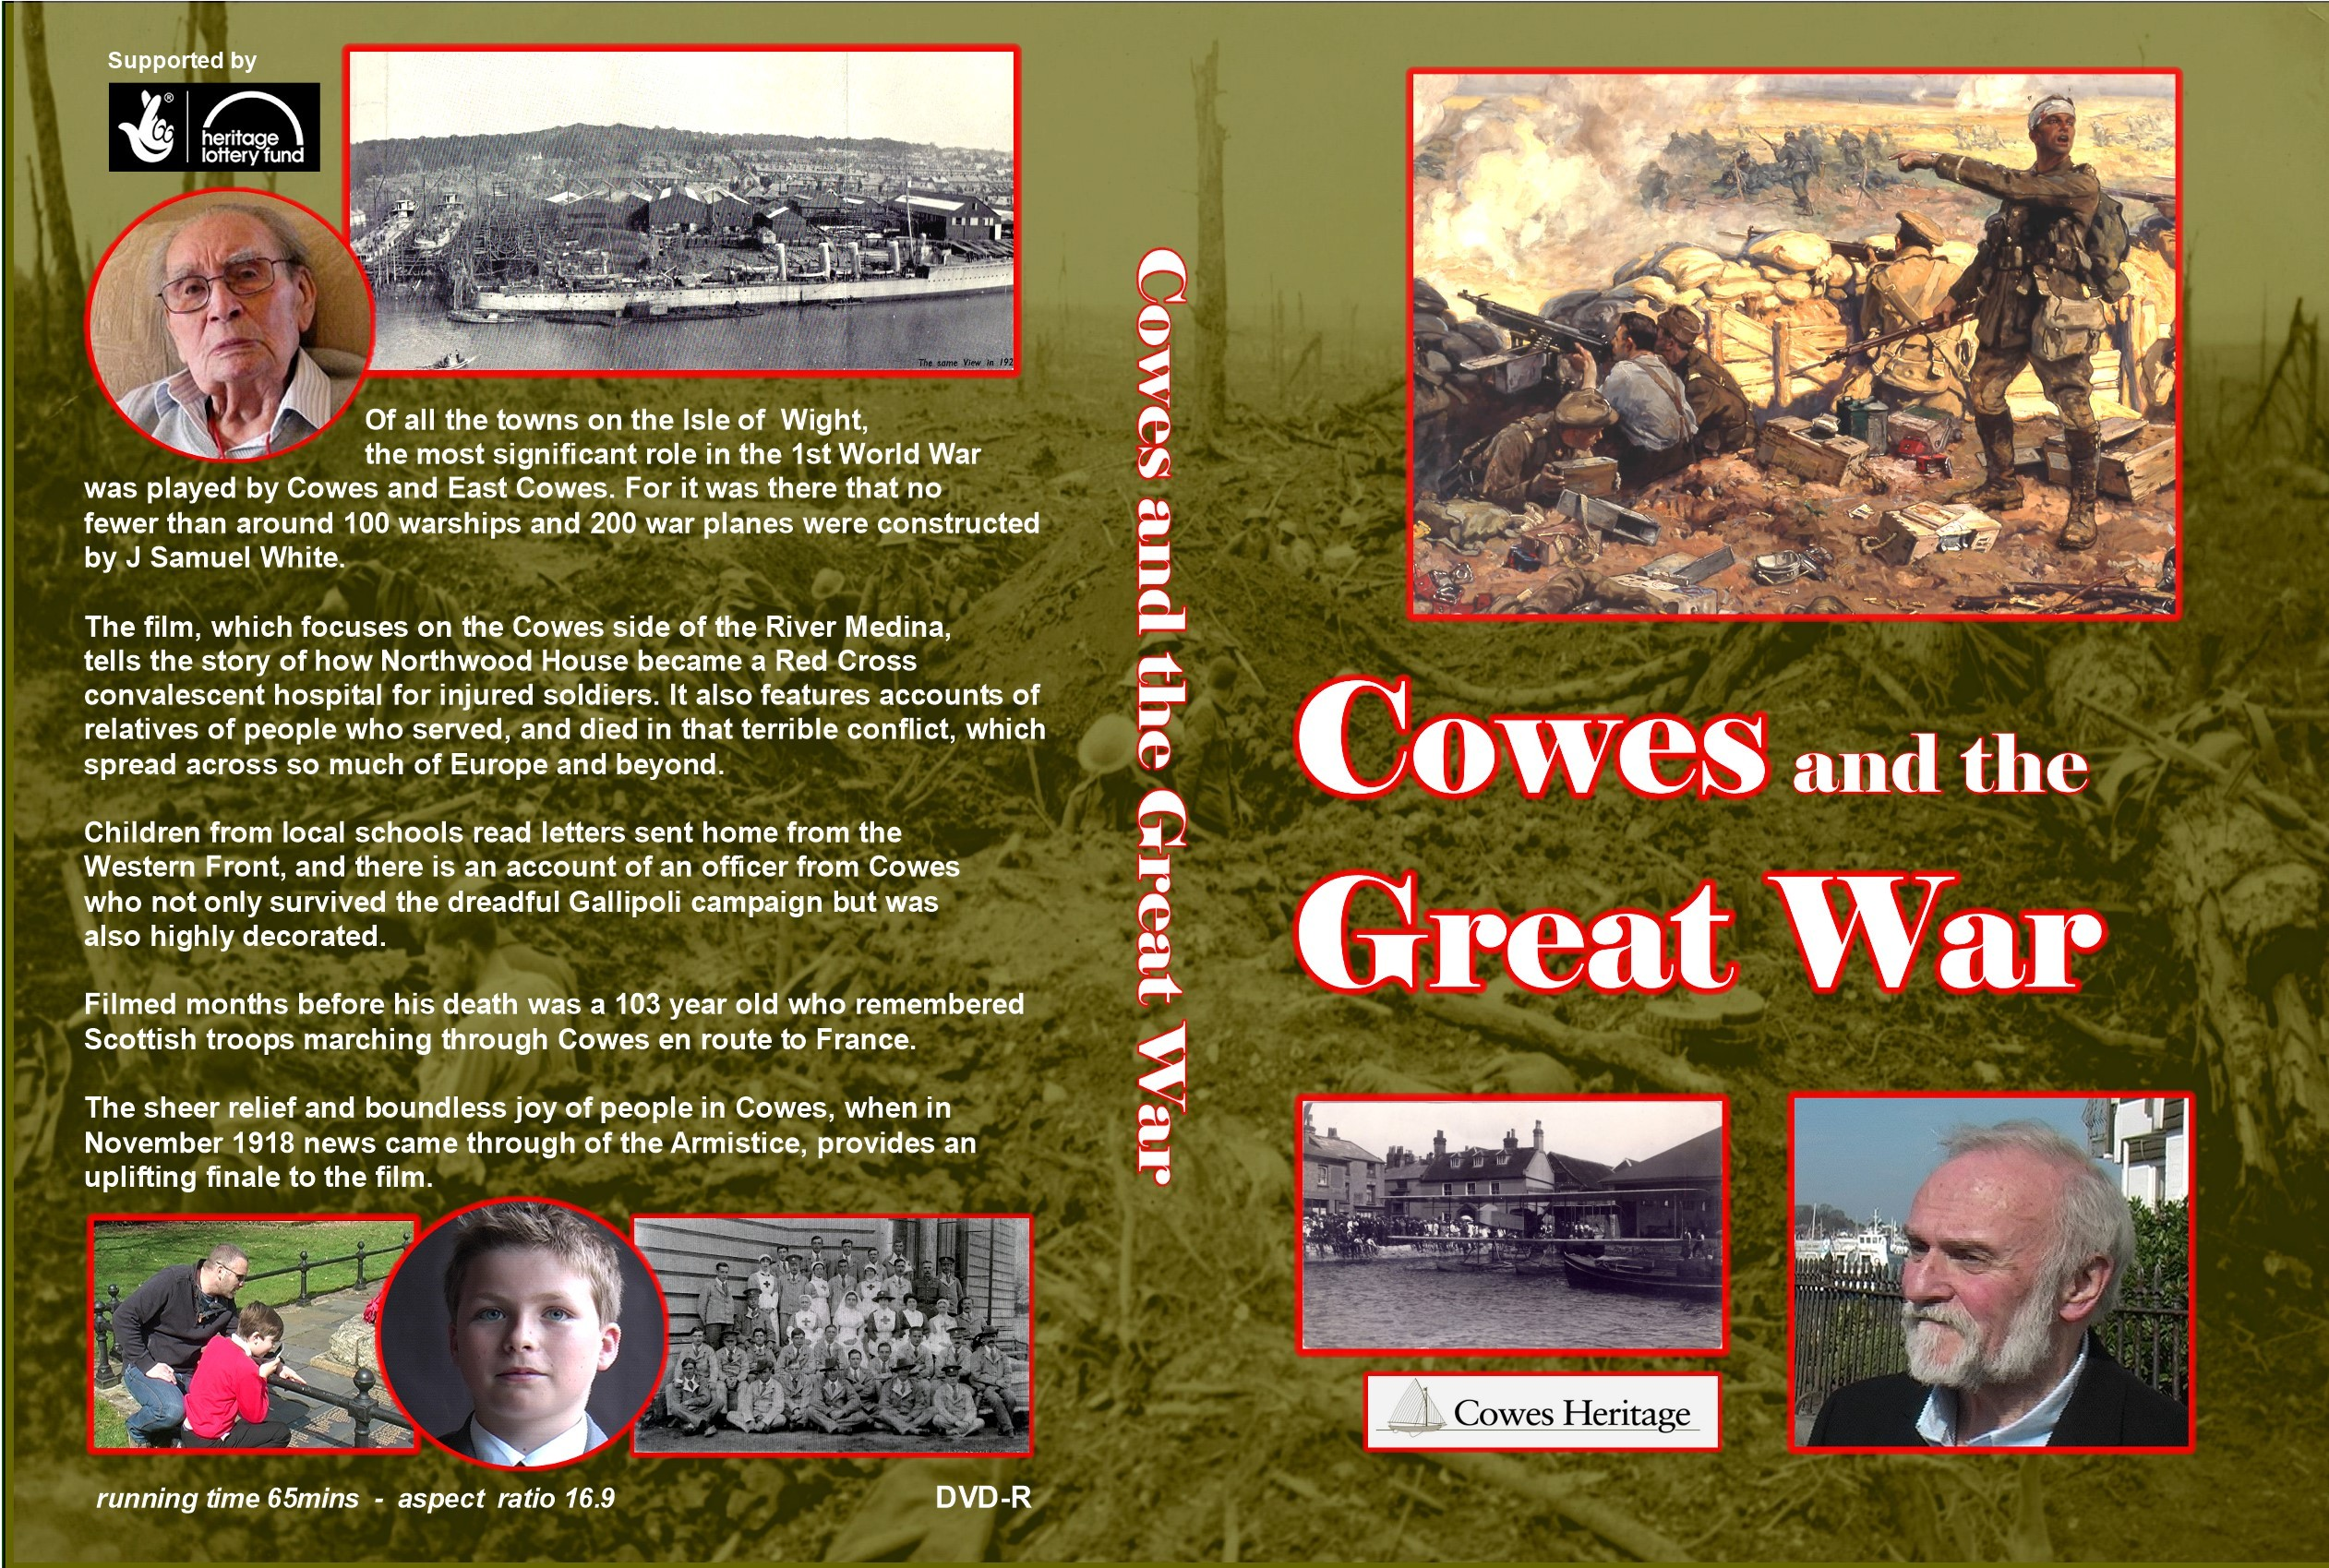 cowes and the great war dvd cover revised jpeg 28th july 2016 (1).jpg